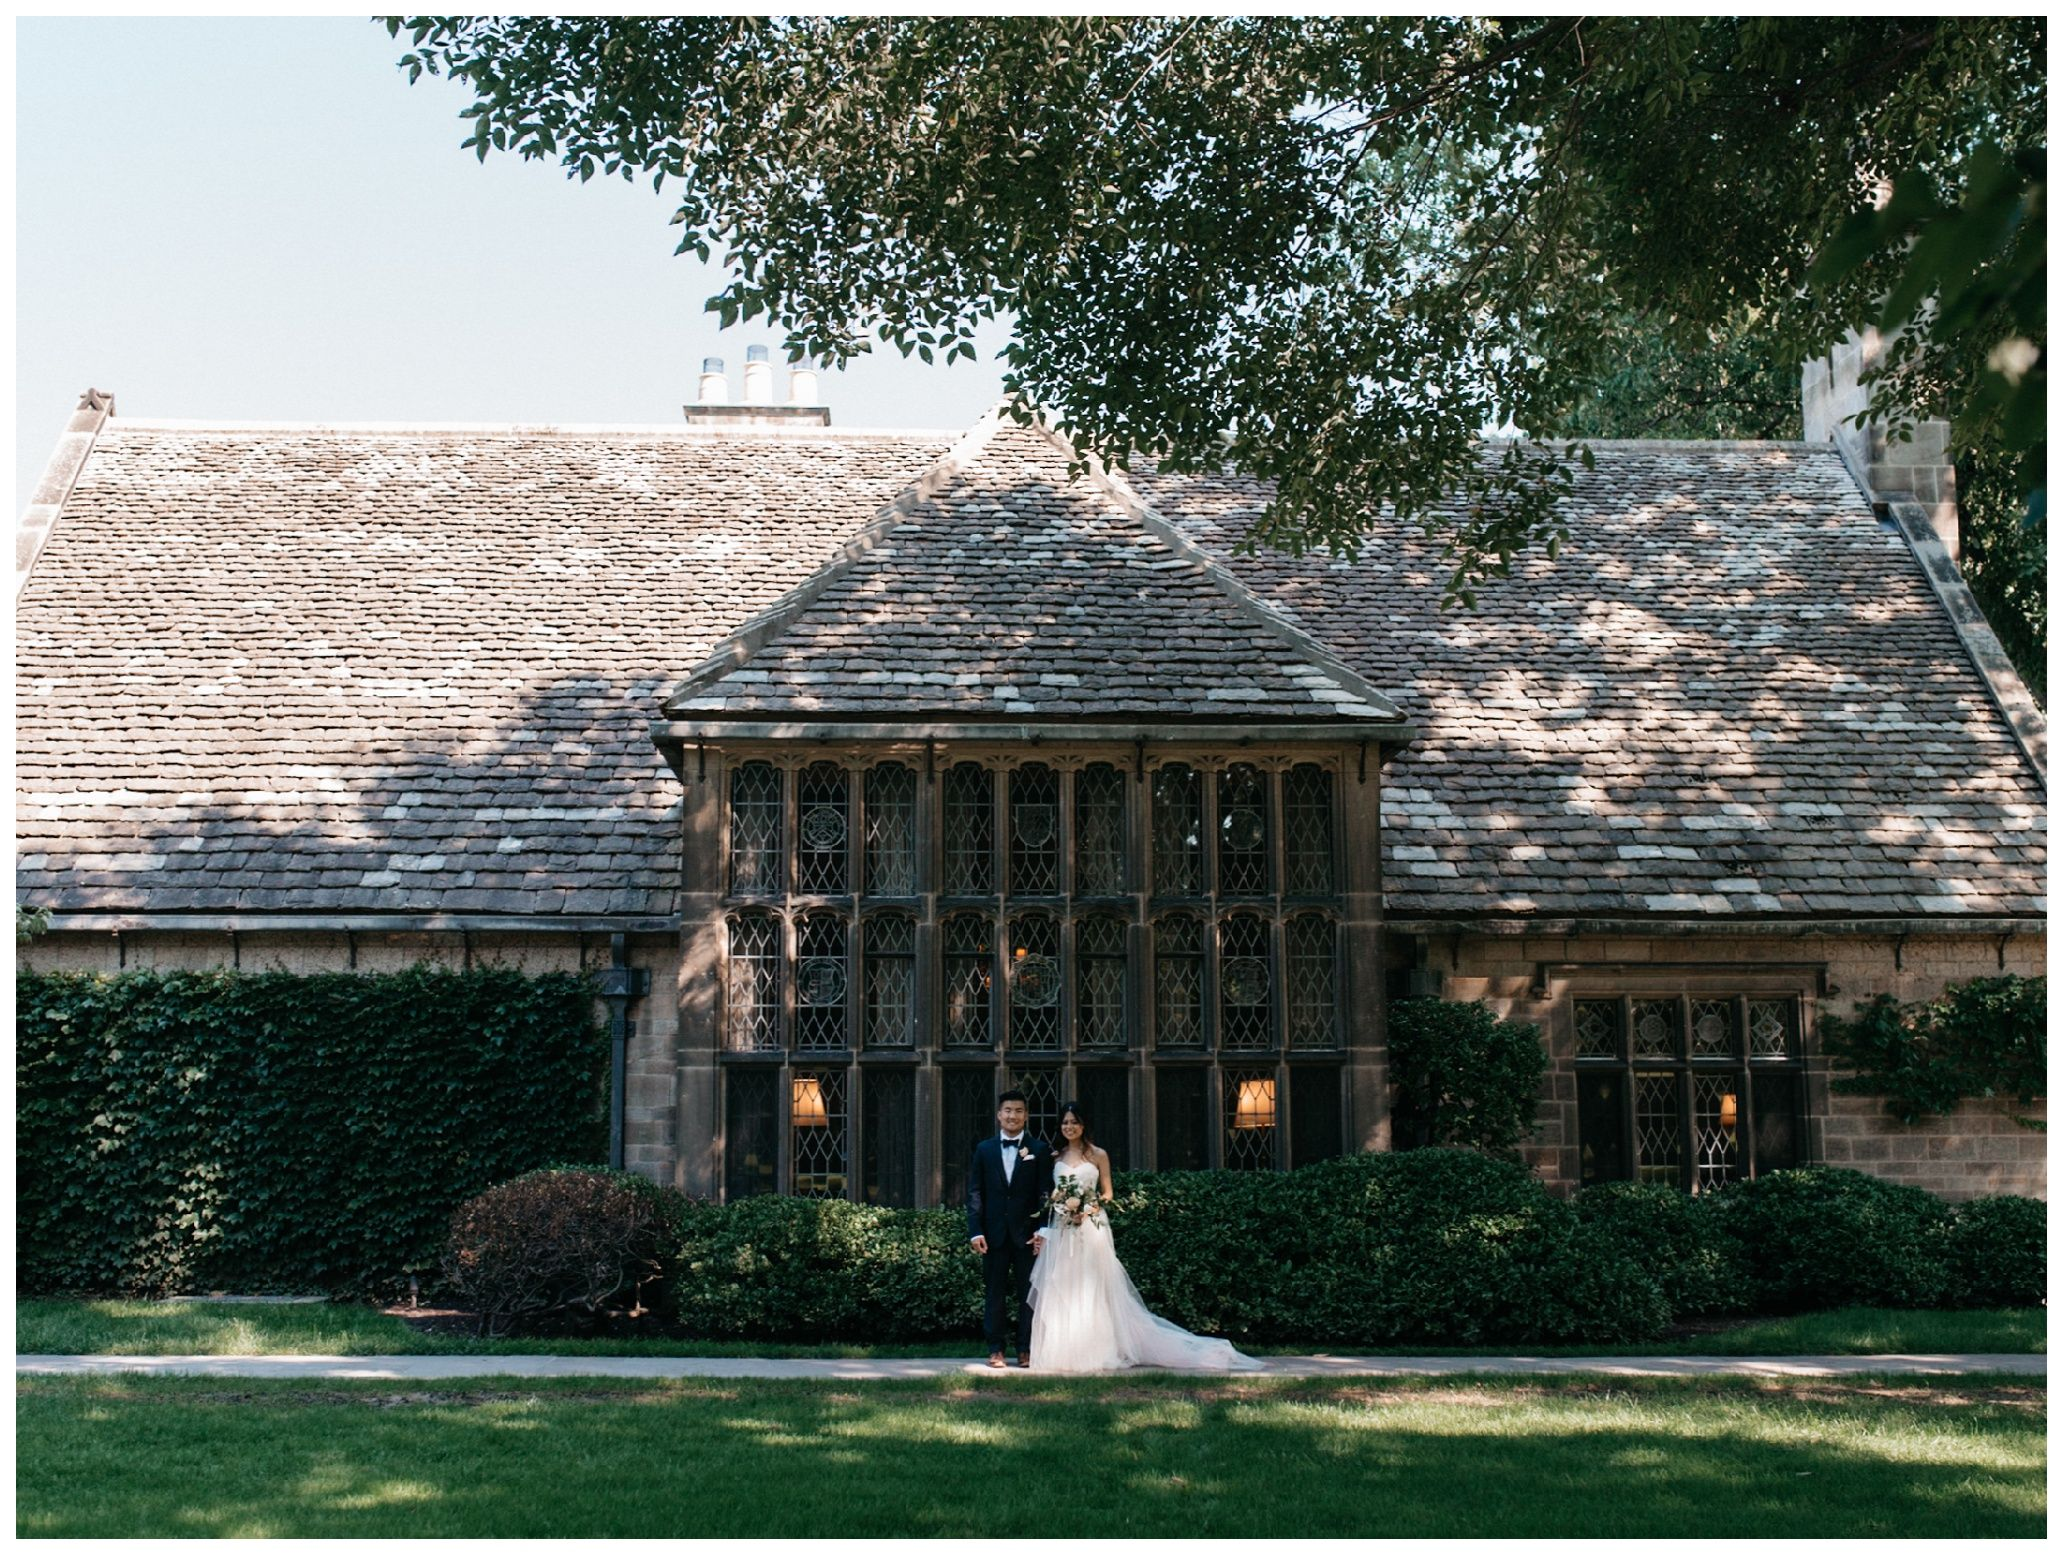 Edsel Eleanor Ford House Wedding Detroit Michigan